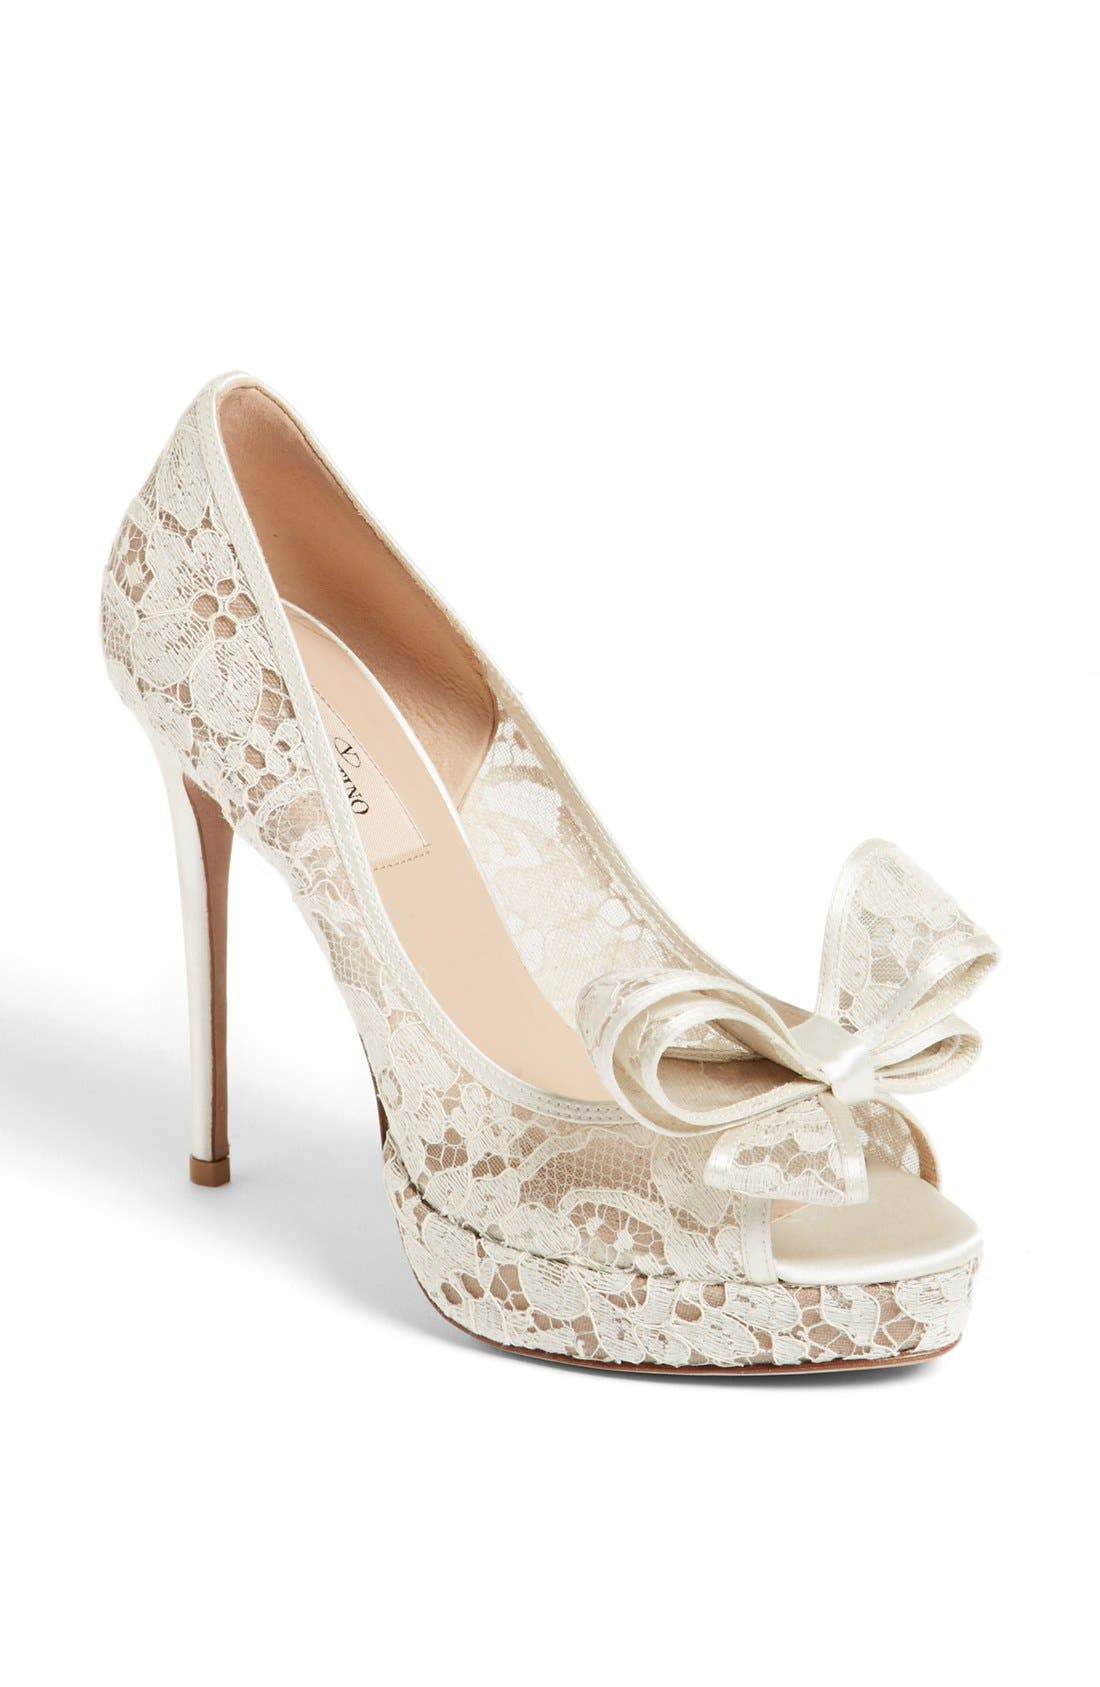 Main Image - Valentino 'Lace Couture Bow' Open Toe Pump